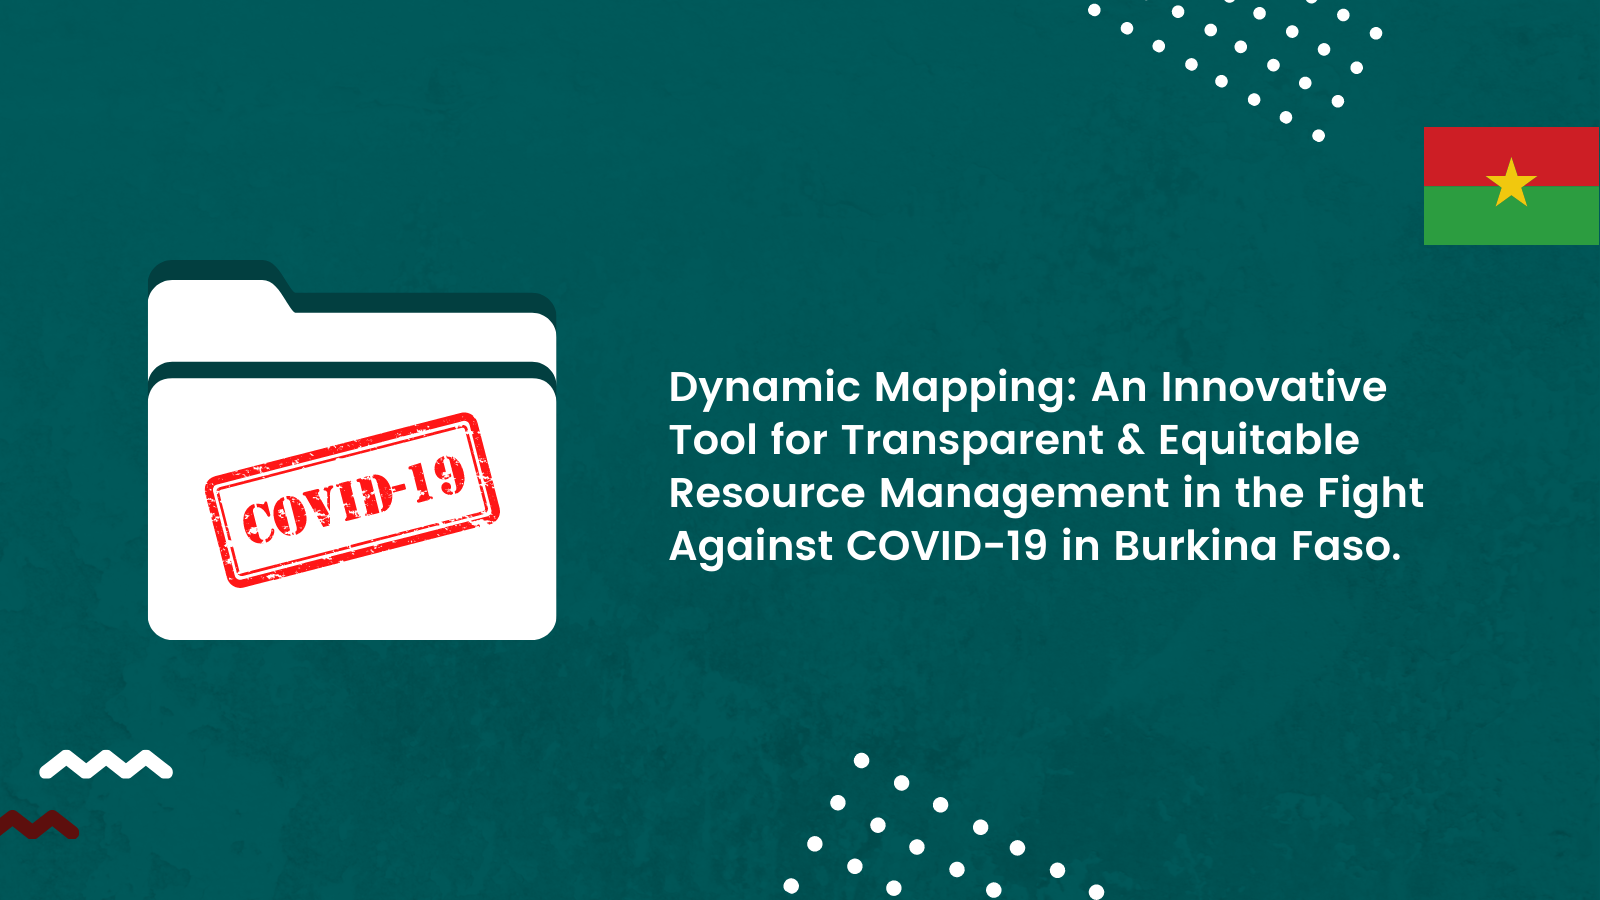 Dynamic Mapping: An Innovative Tool for Transparent and Equitable Resource Management in the Fight Against COVID-19 in Burkina Faso